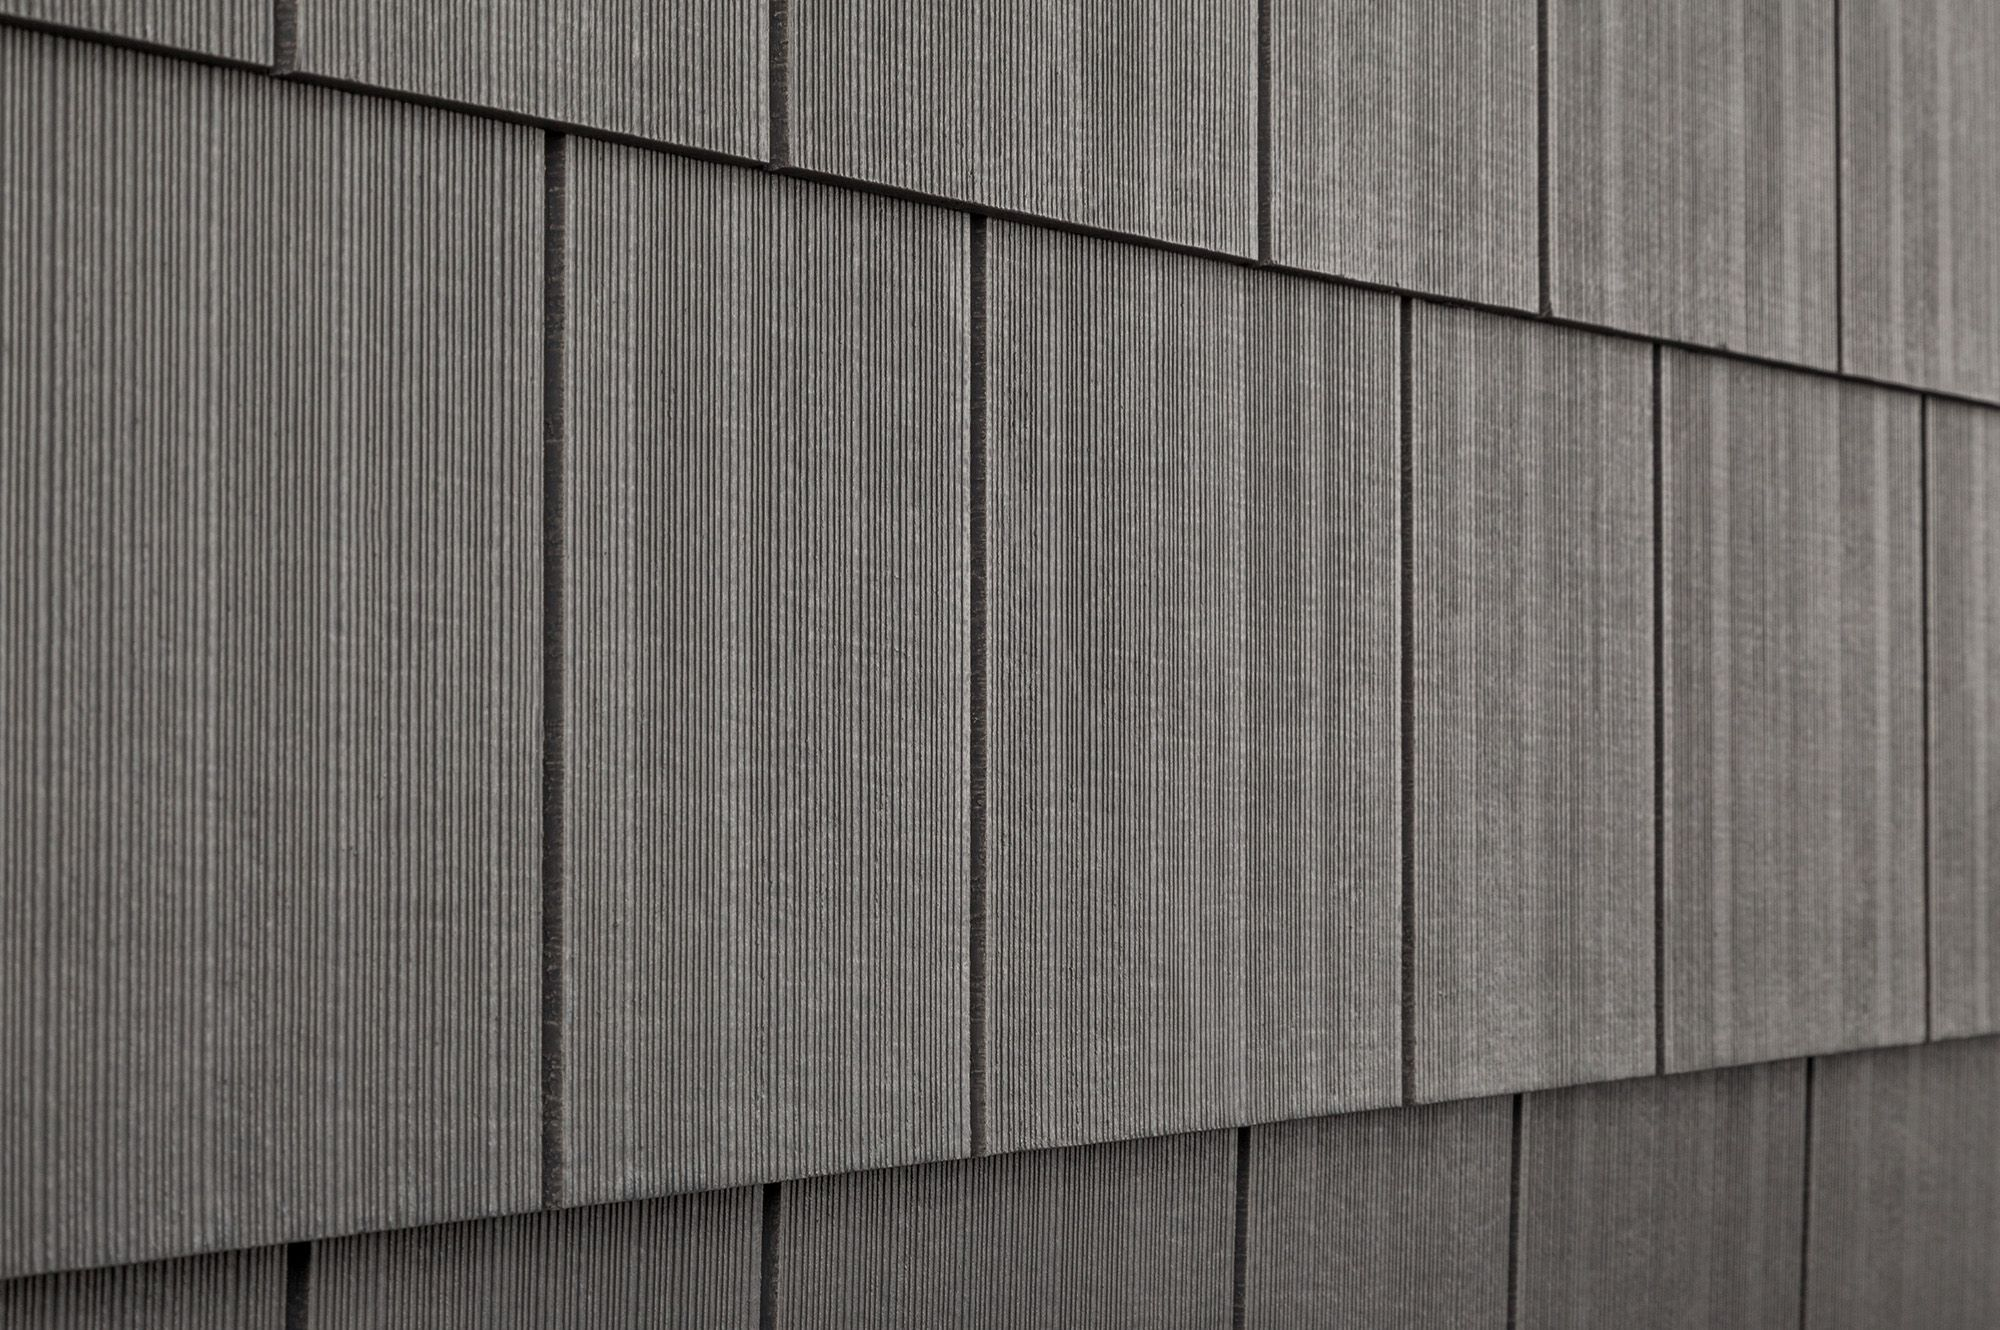 Builddirect 174 Cerber Fiber Cement Siding Rustic Select Shingle Panels Fiber Cement Siding Shingle Panel Fiber Cement